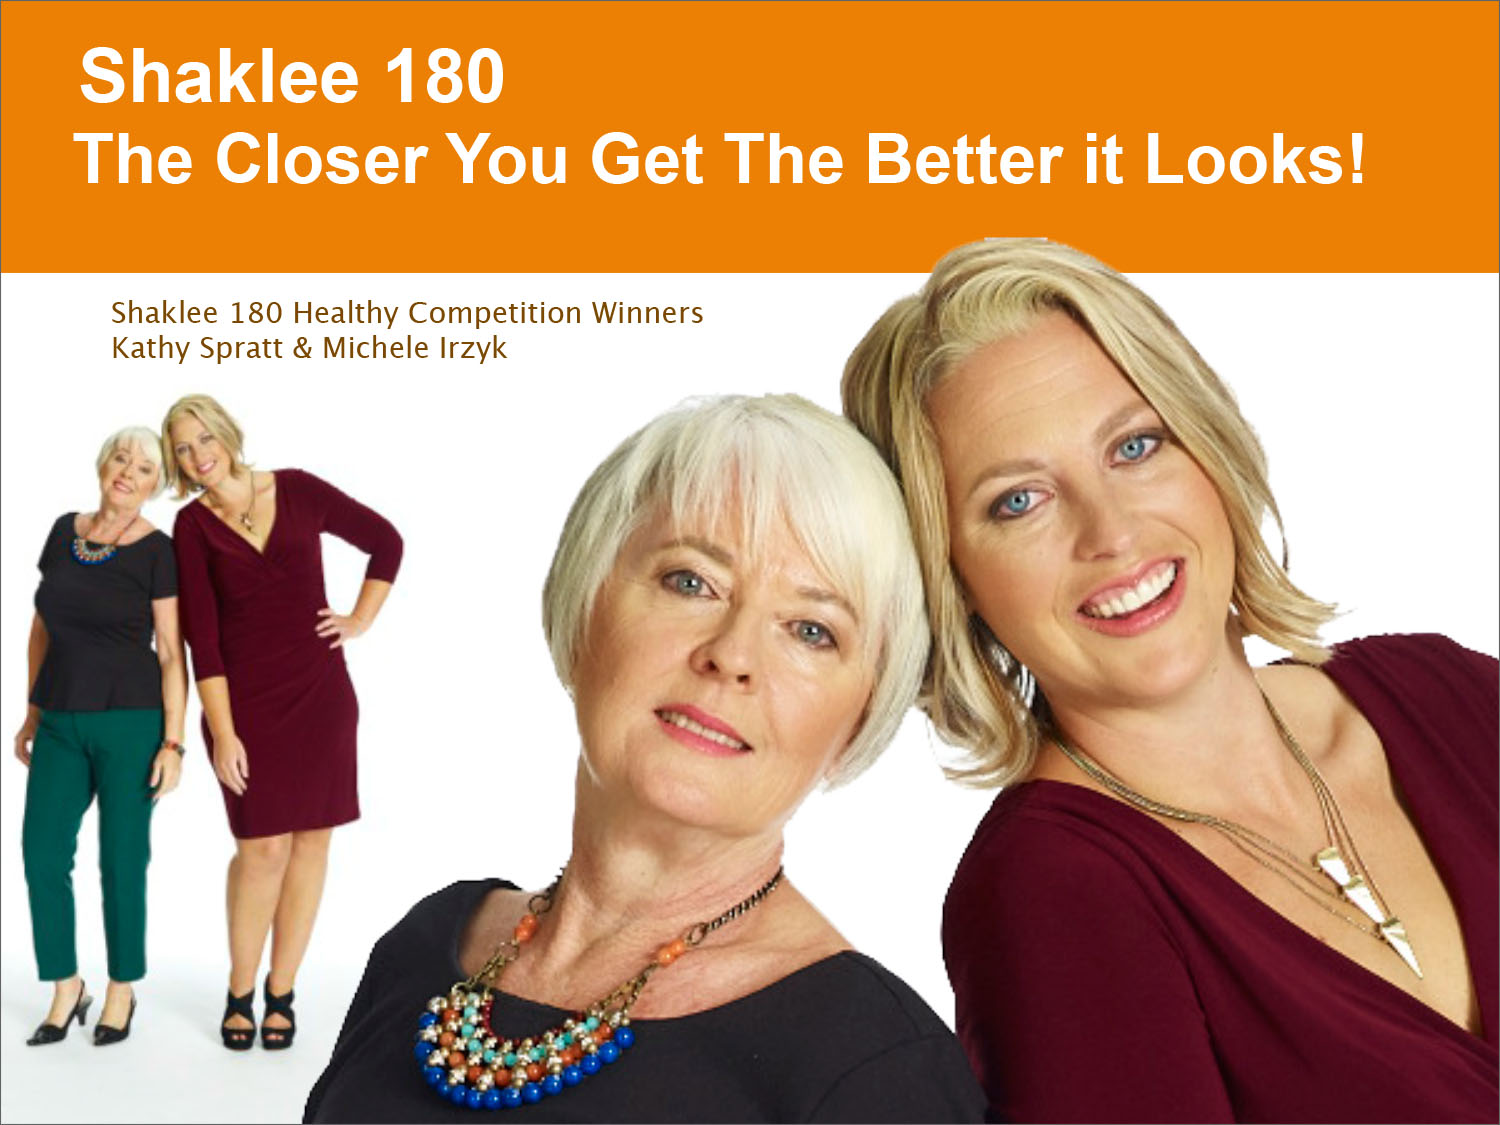 Shaklee 180 Healthy Competition Winners